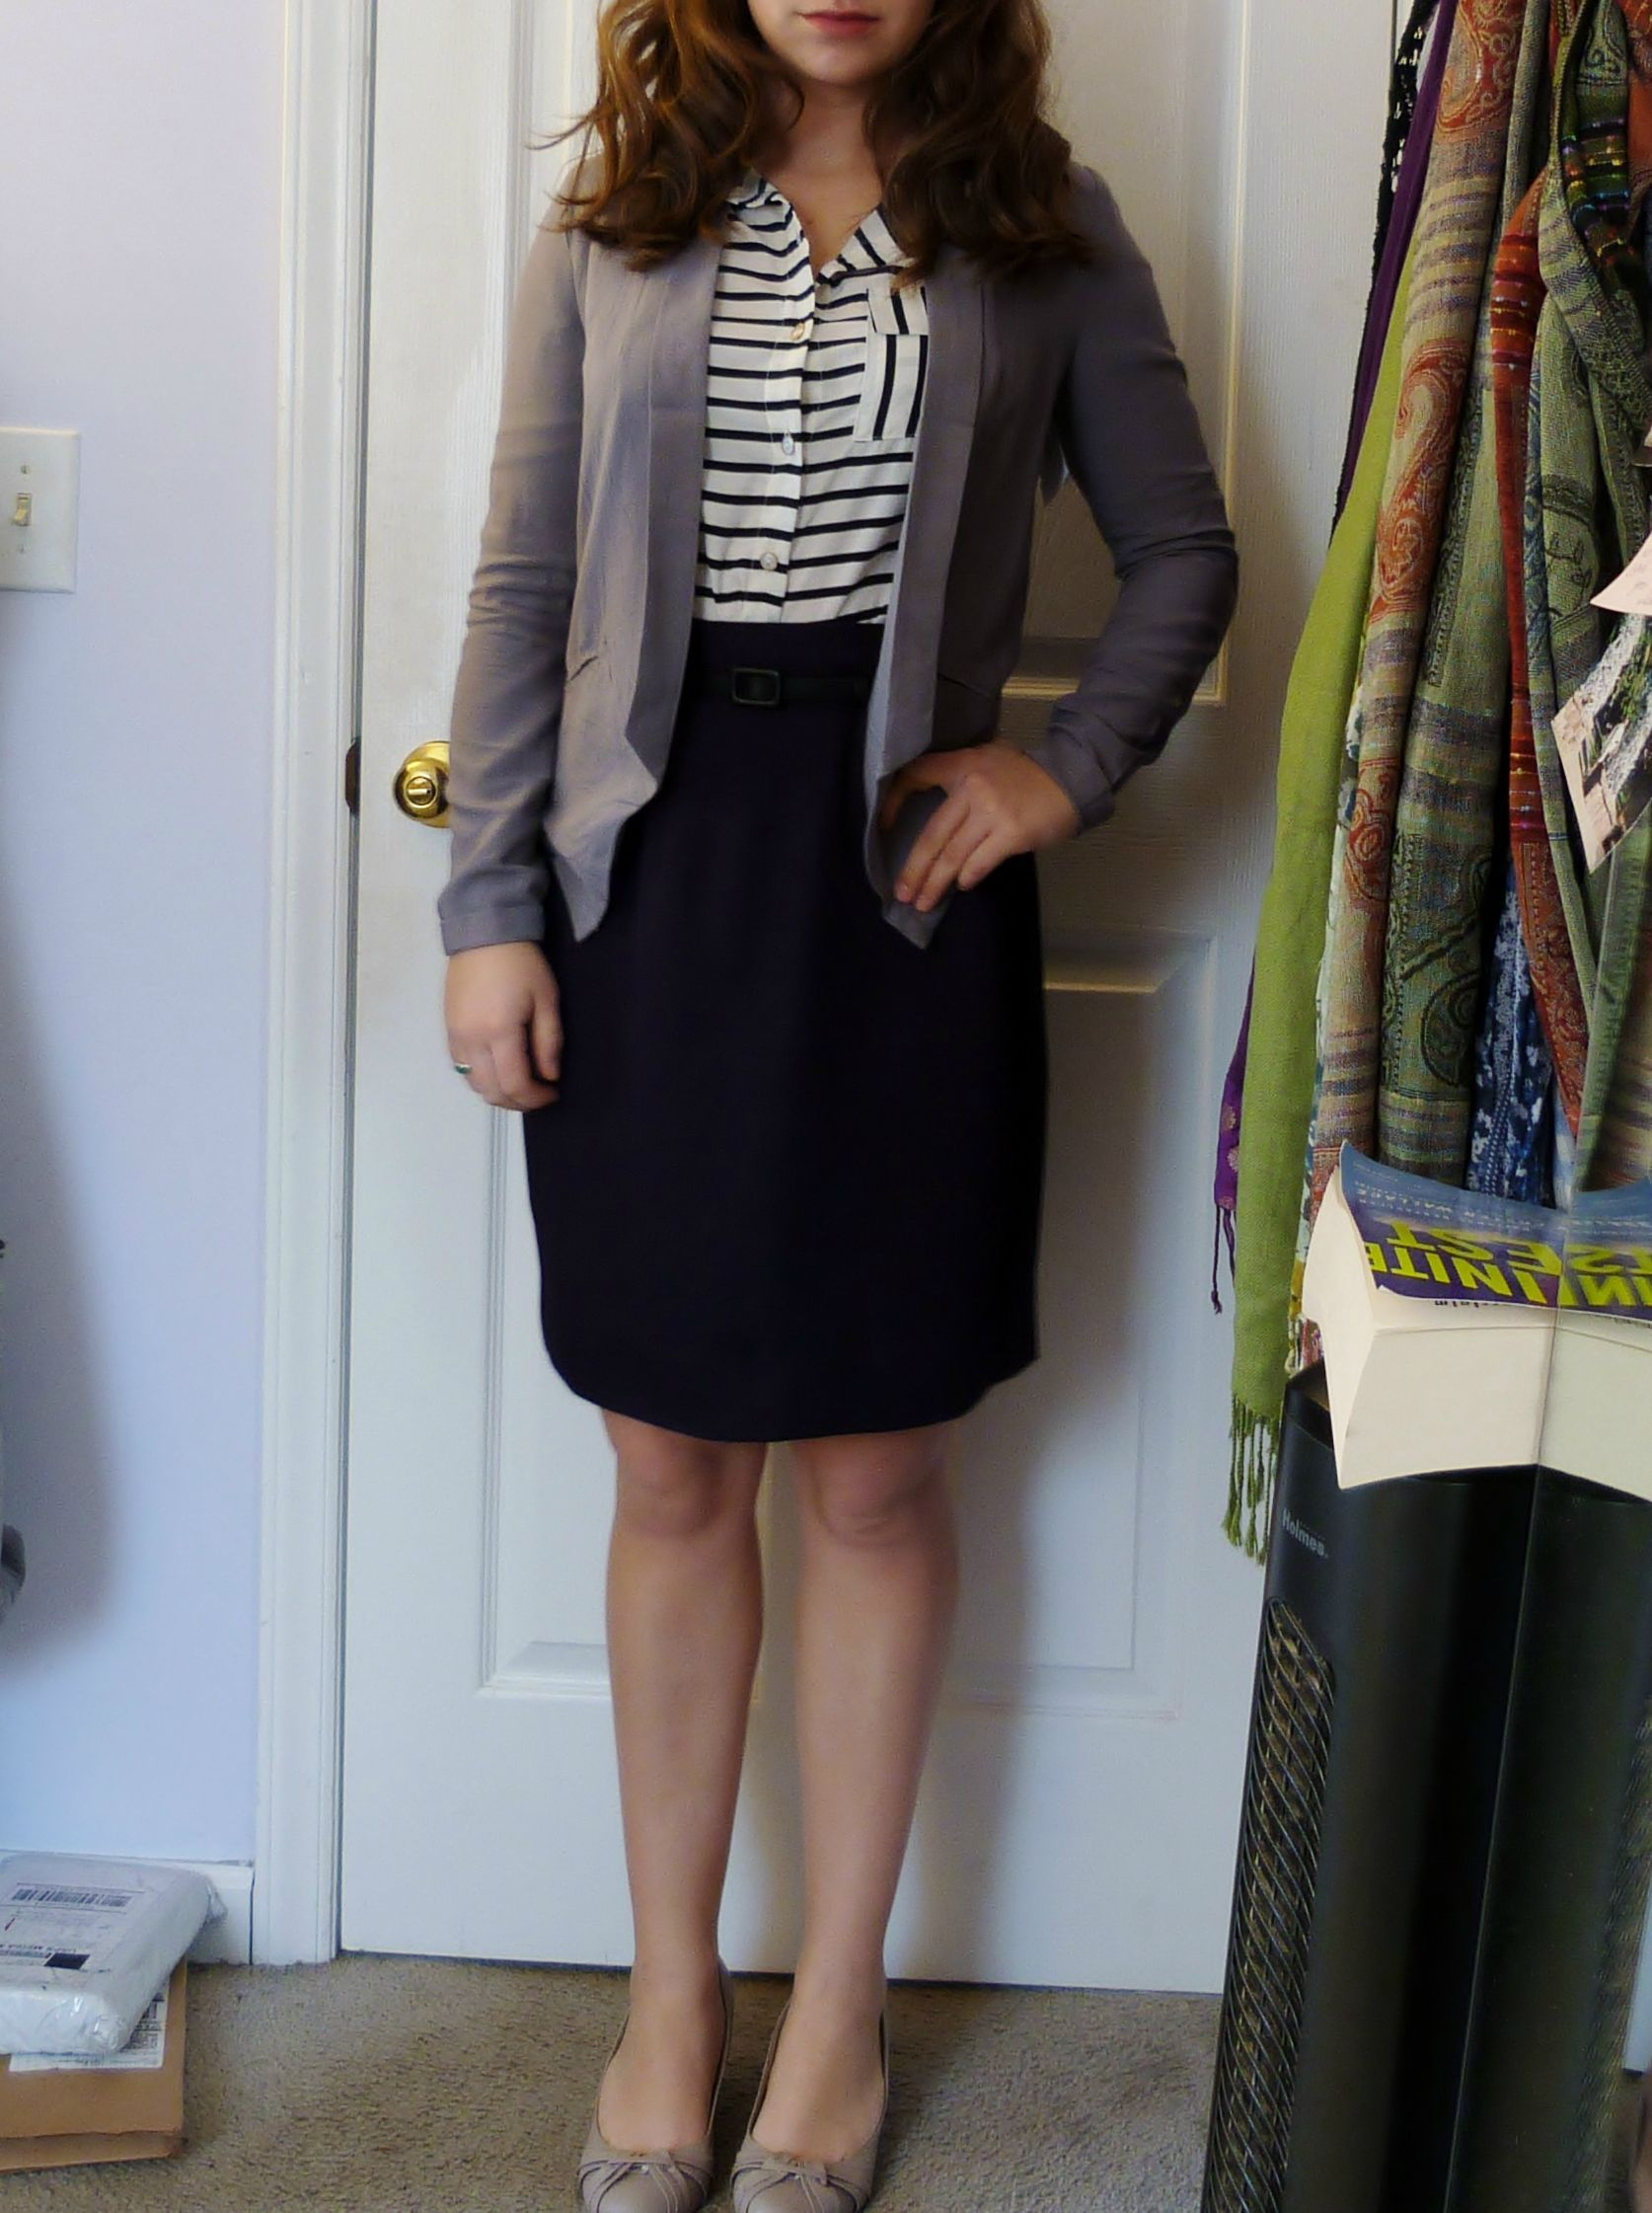 Interview Outfits  My Style  Interview Dress, Interview -3988